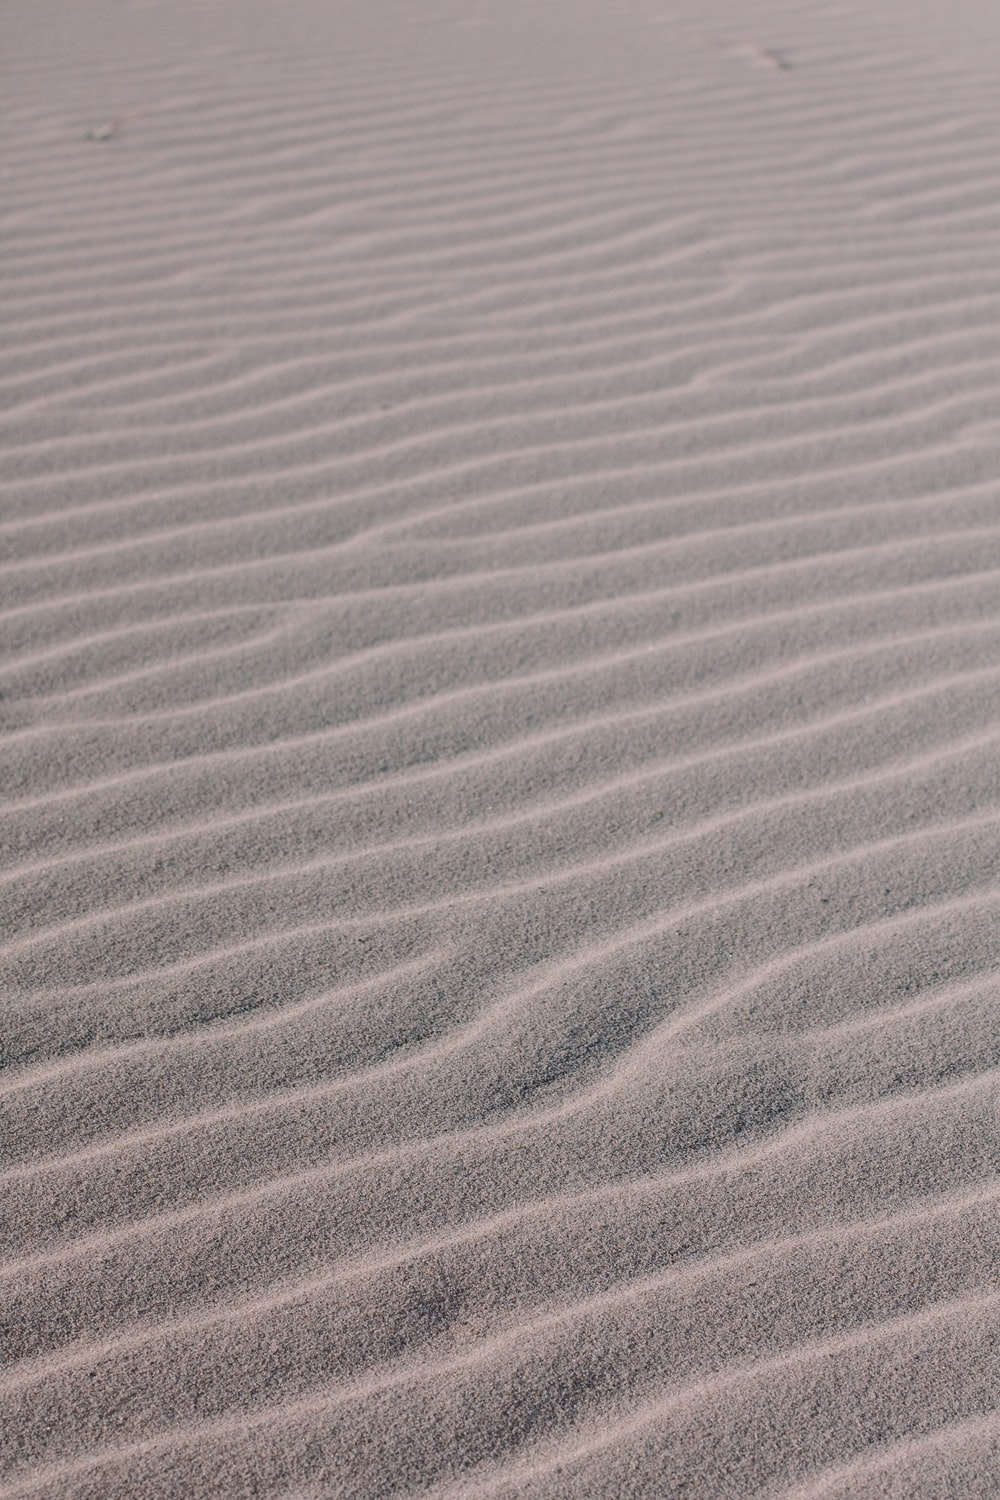 sand wave formations